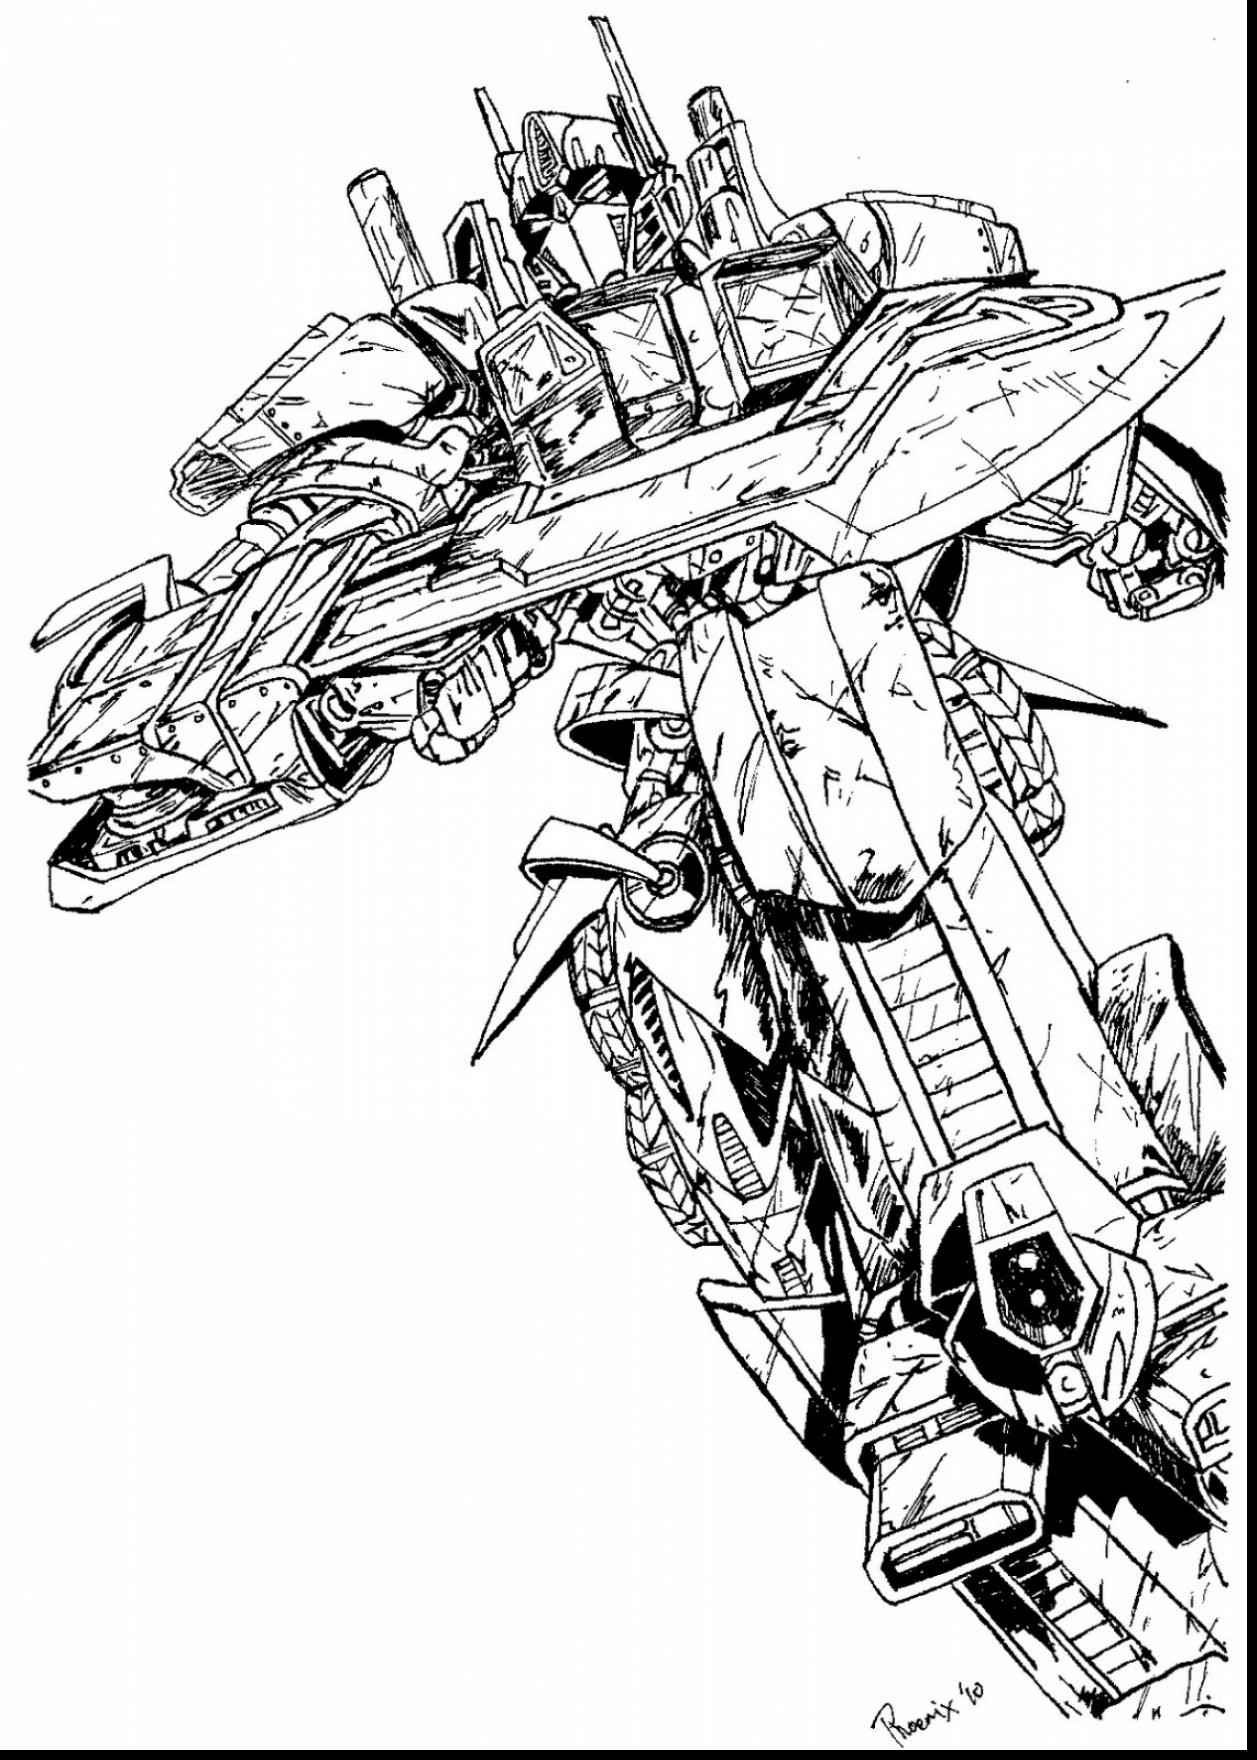 transformers 4 drawing at getdrawings com free for personal use